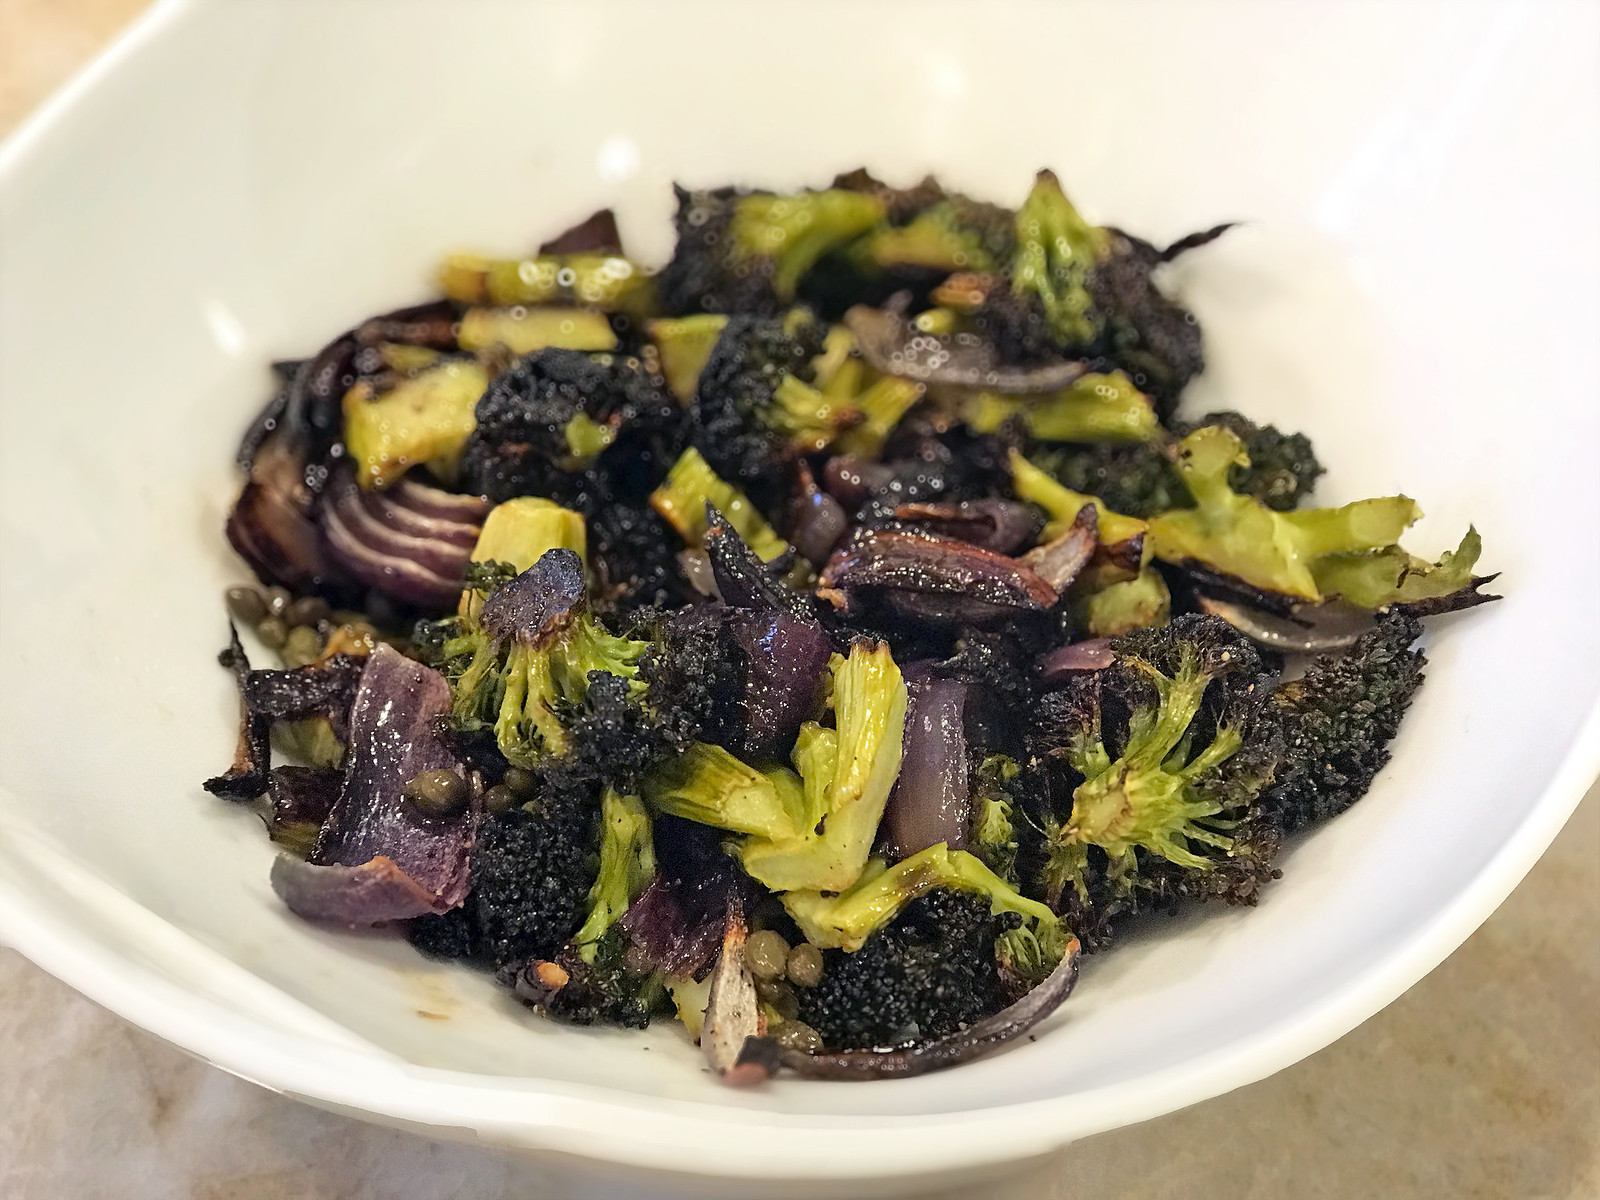 Roasted broccoli with brown butter